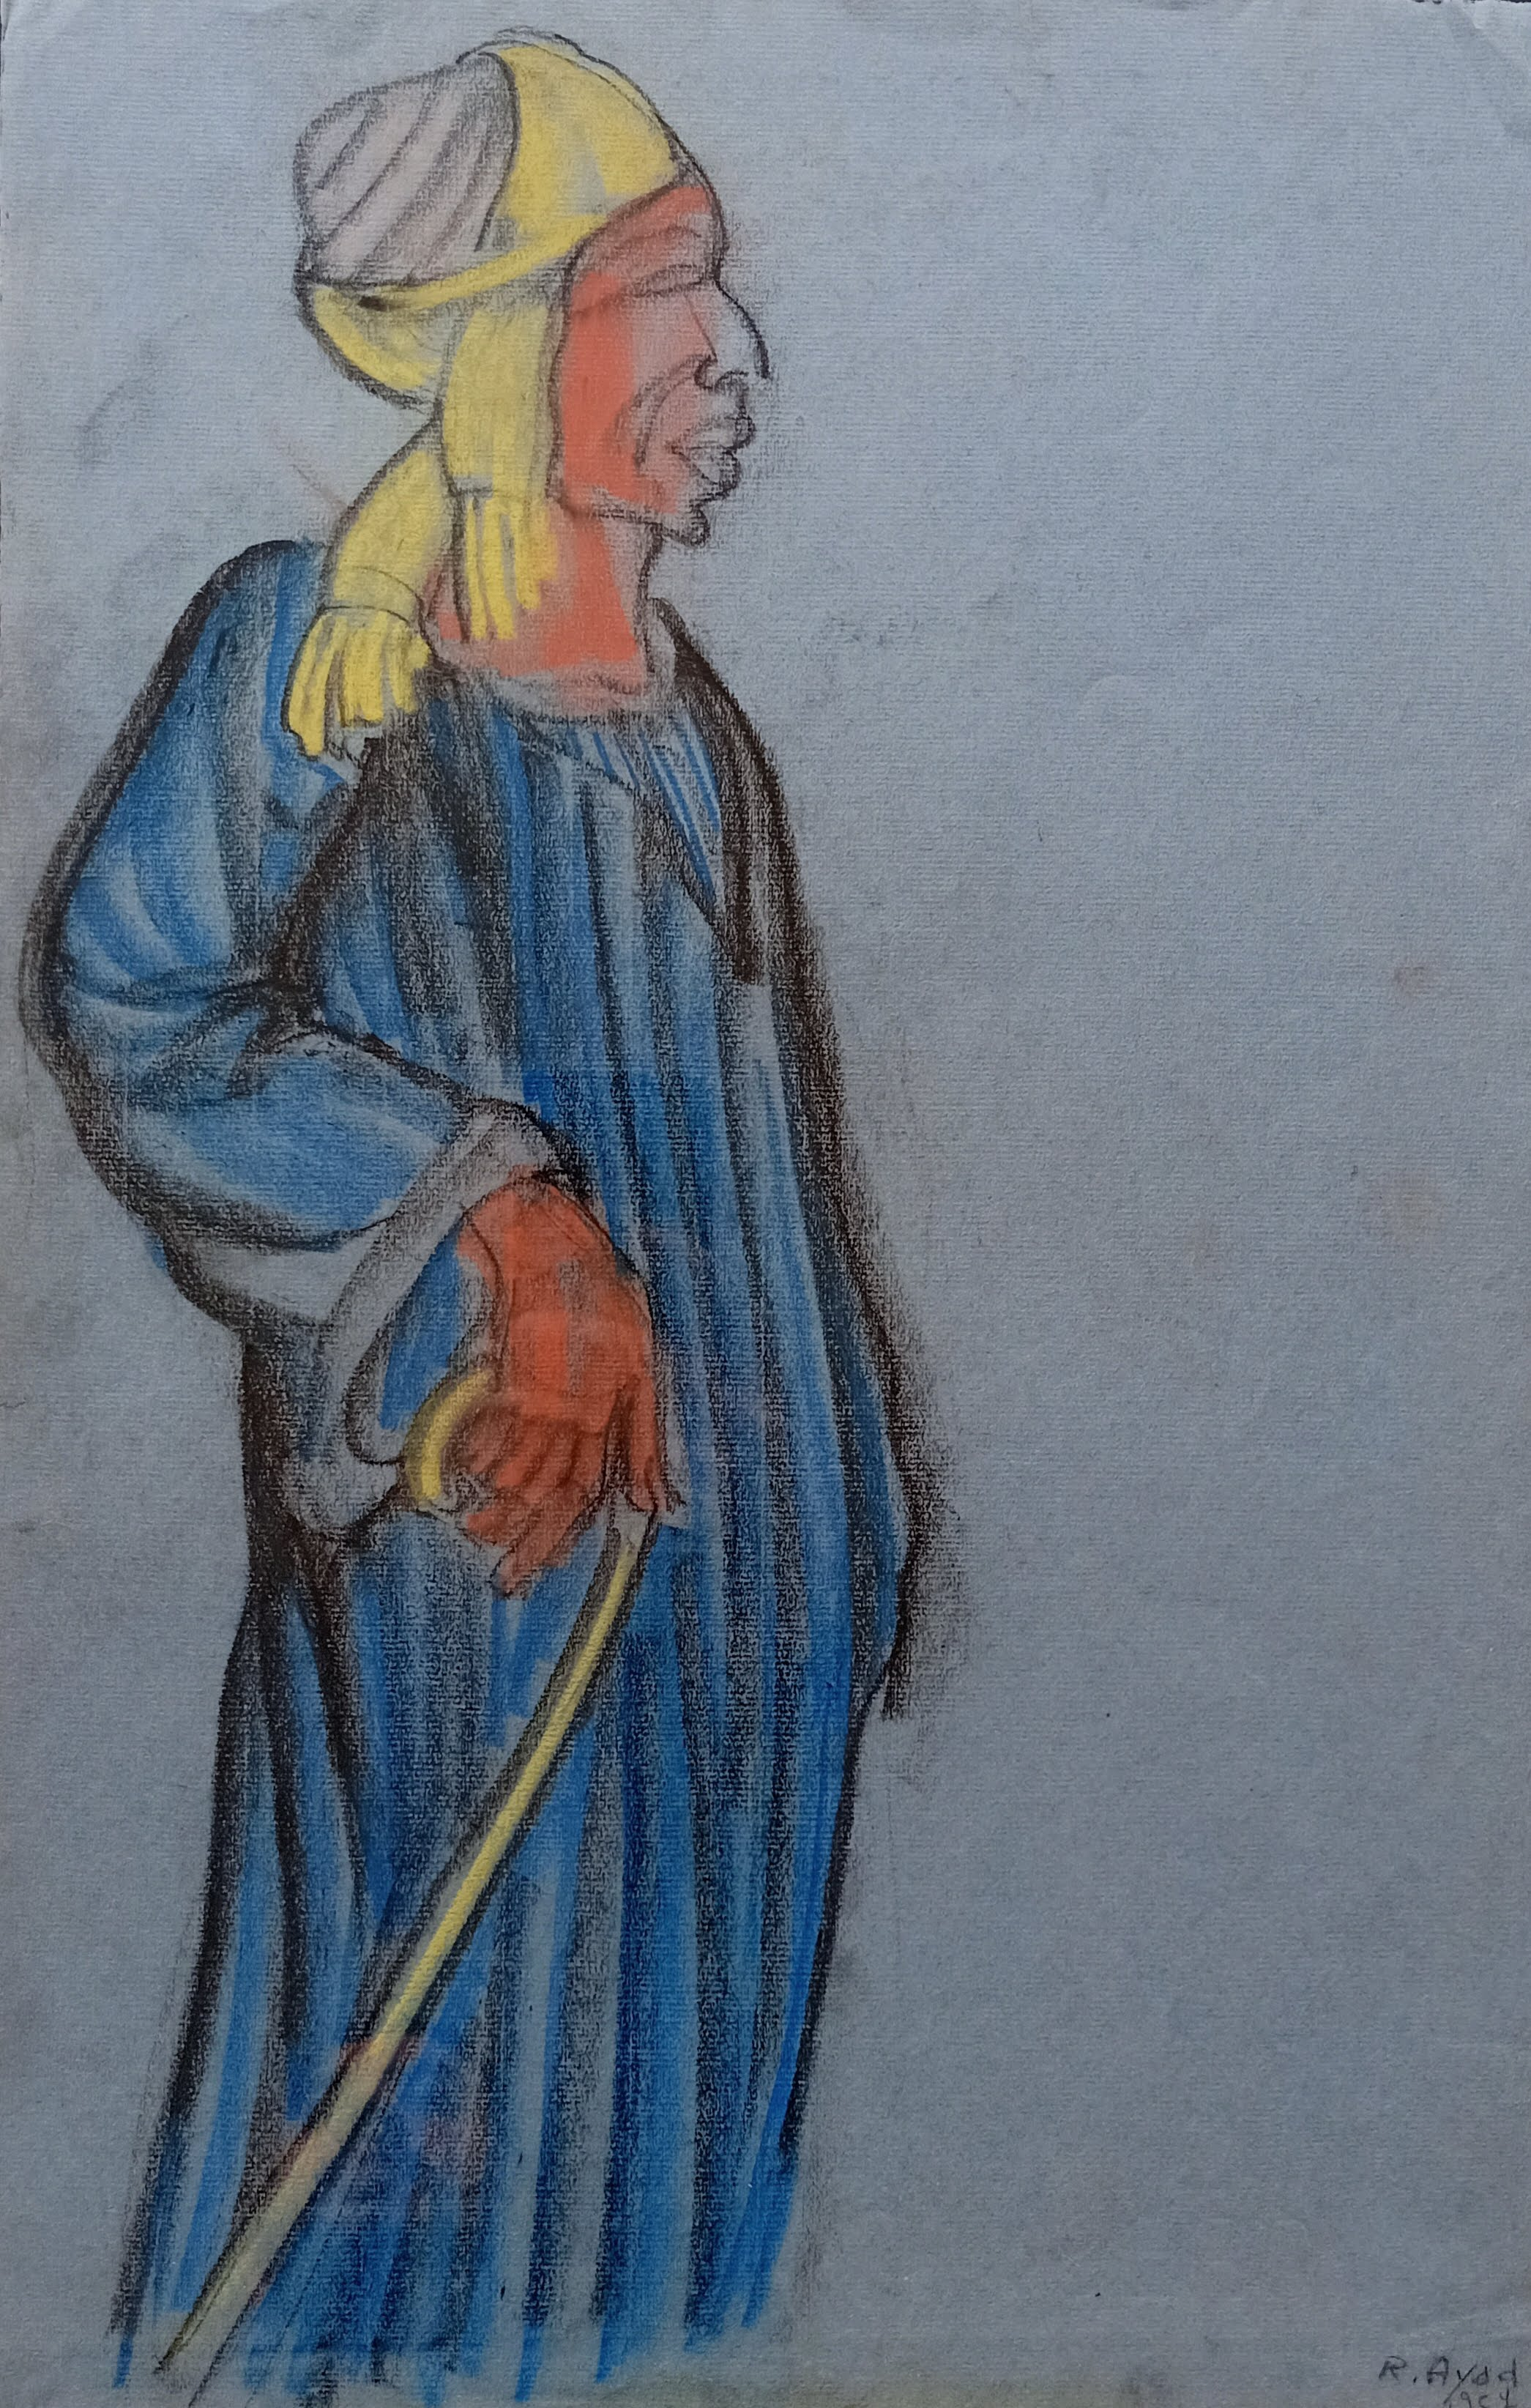 Ragheb Ayad, Standing Man with Stick, 1954. Mixed media on thick blue paper 48 x 30cm Signed and dated bottom right.